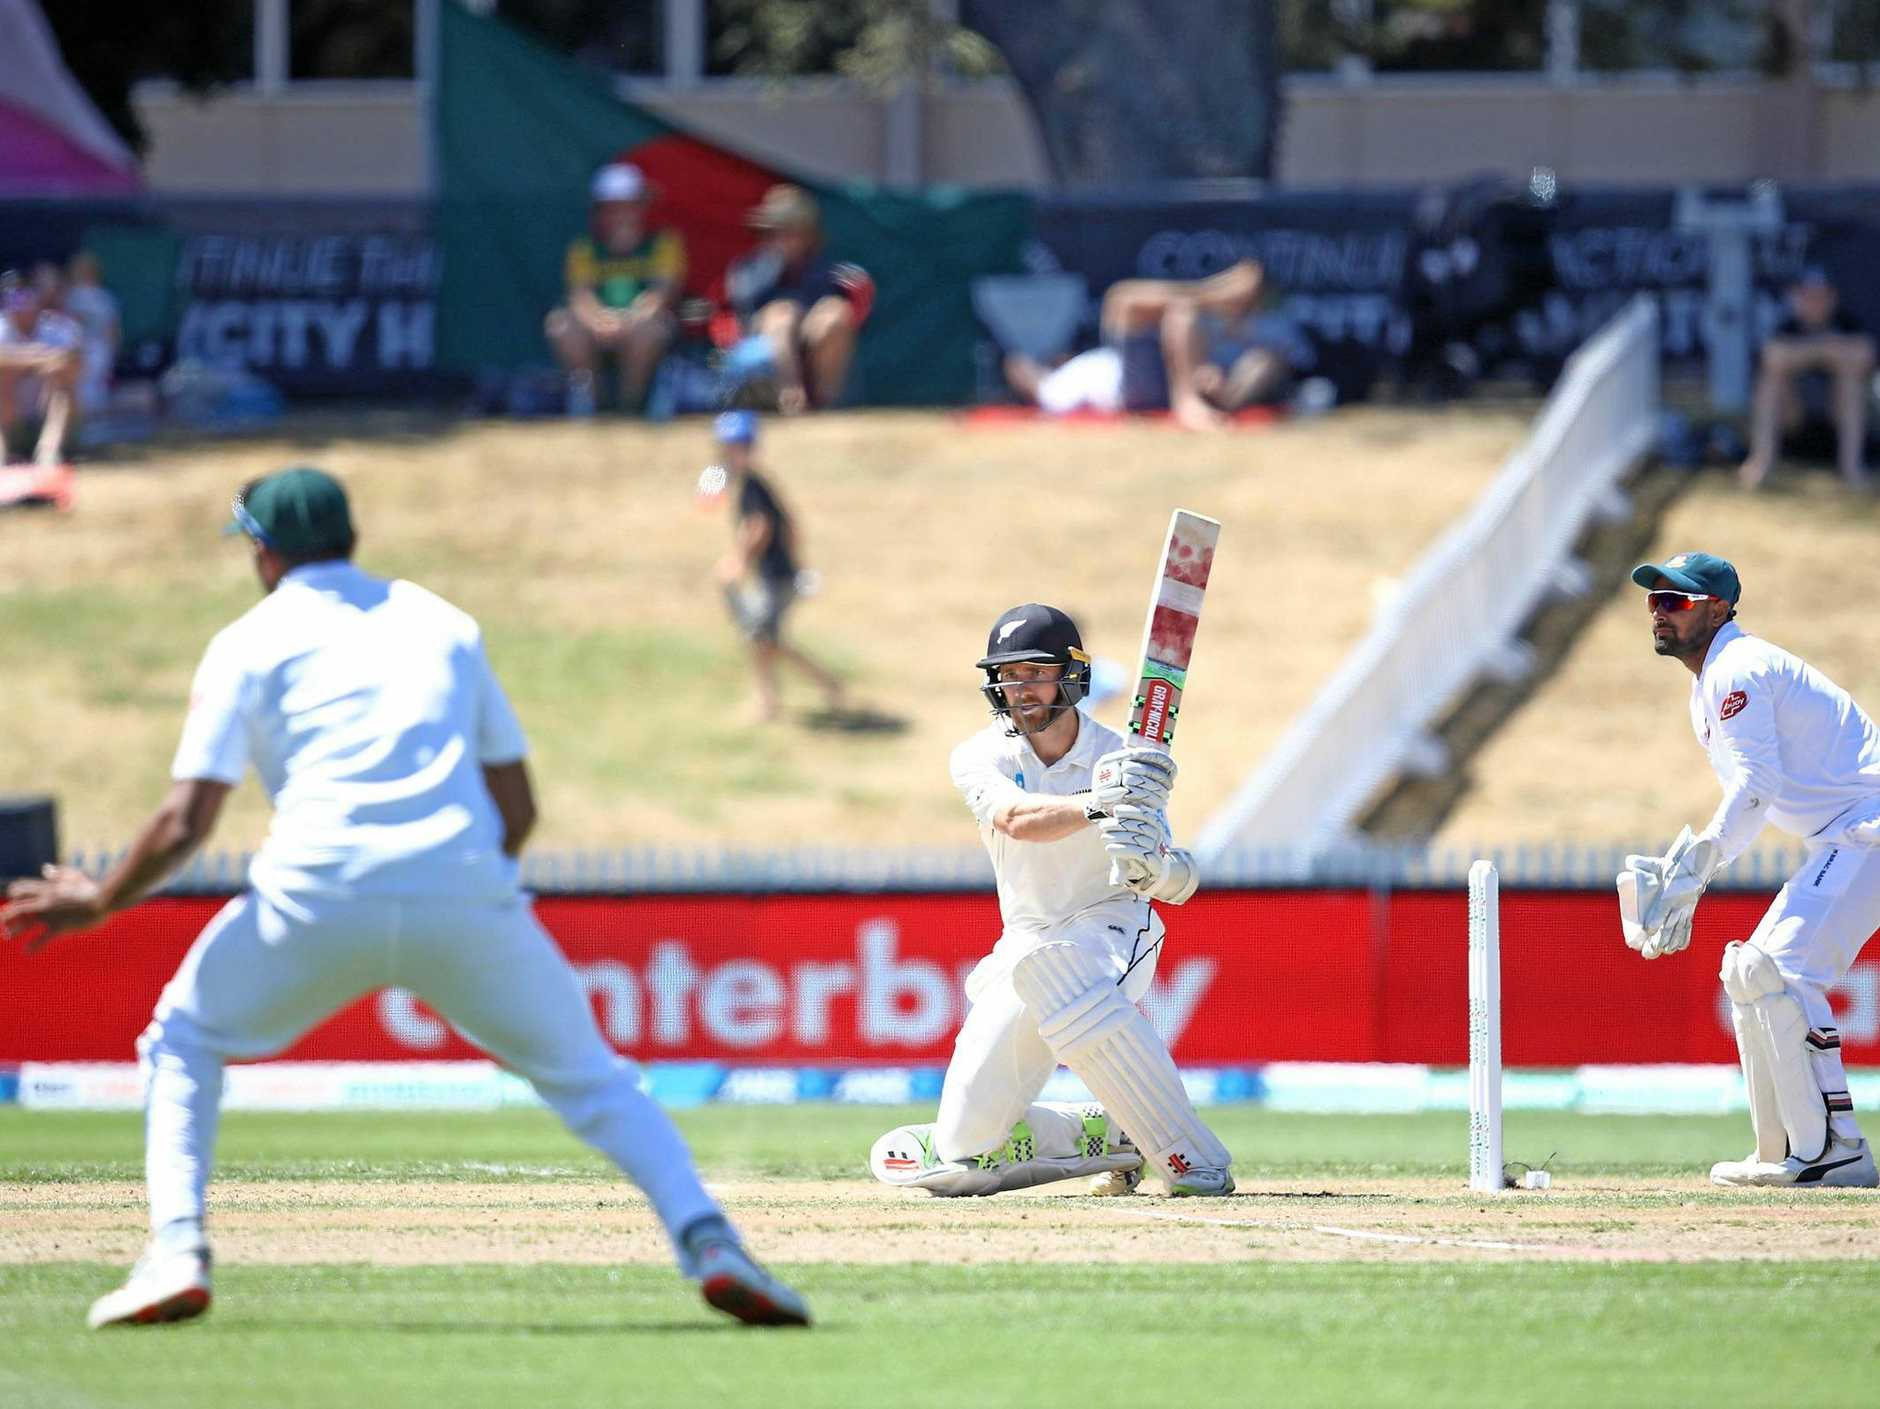 New Zealand skipper Kane Williamson in control on day three of the first Test against Bangladesh at Seddon Park, Hamilton. Picture: Phil Walter/Getty Images